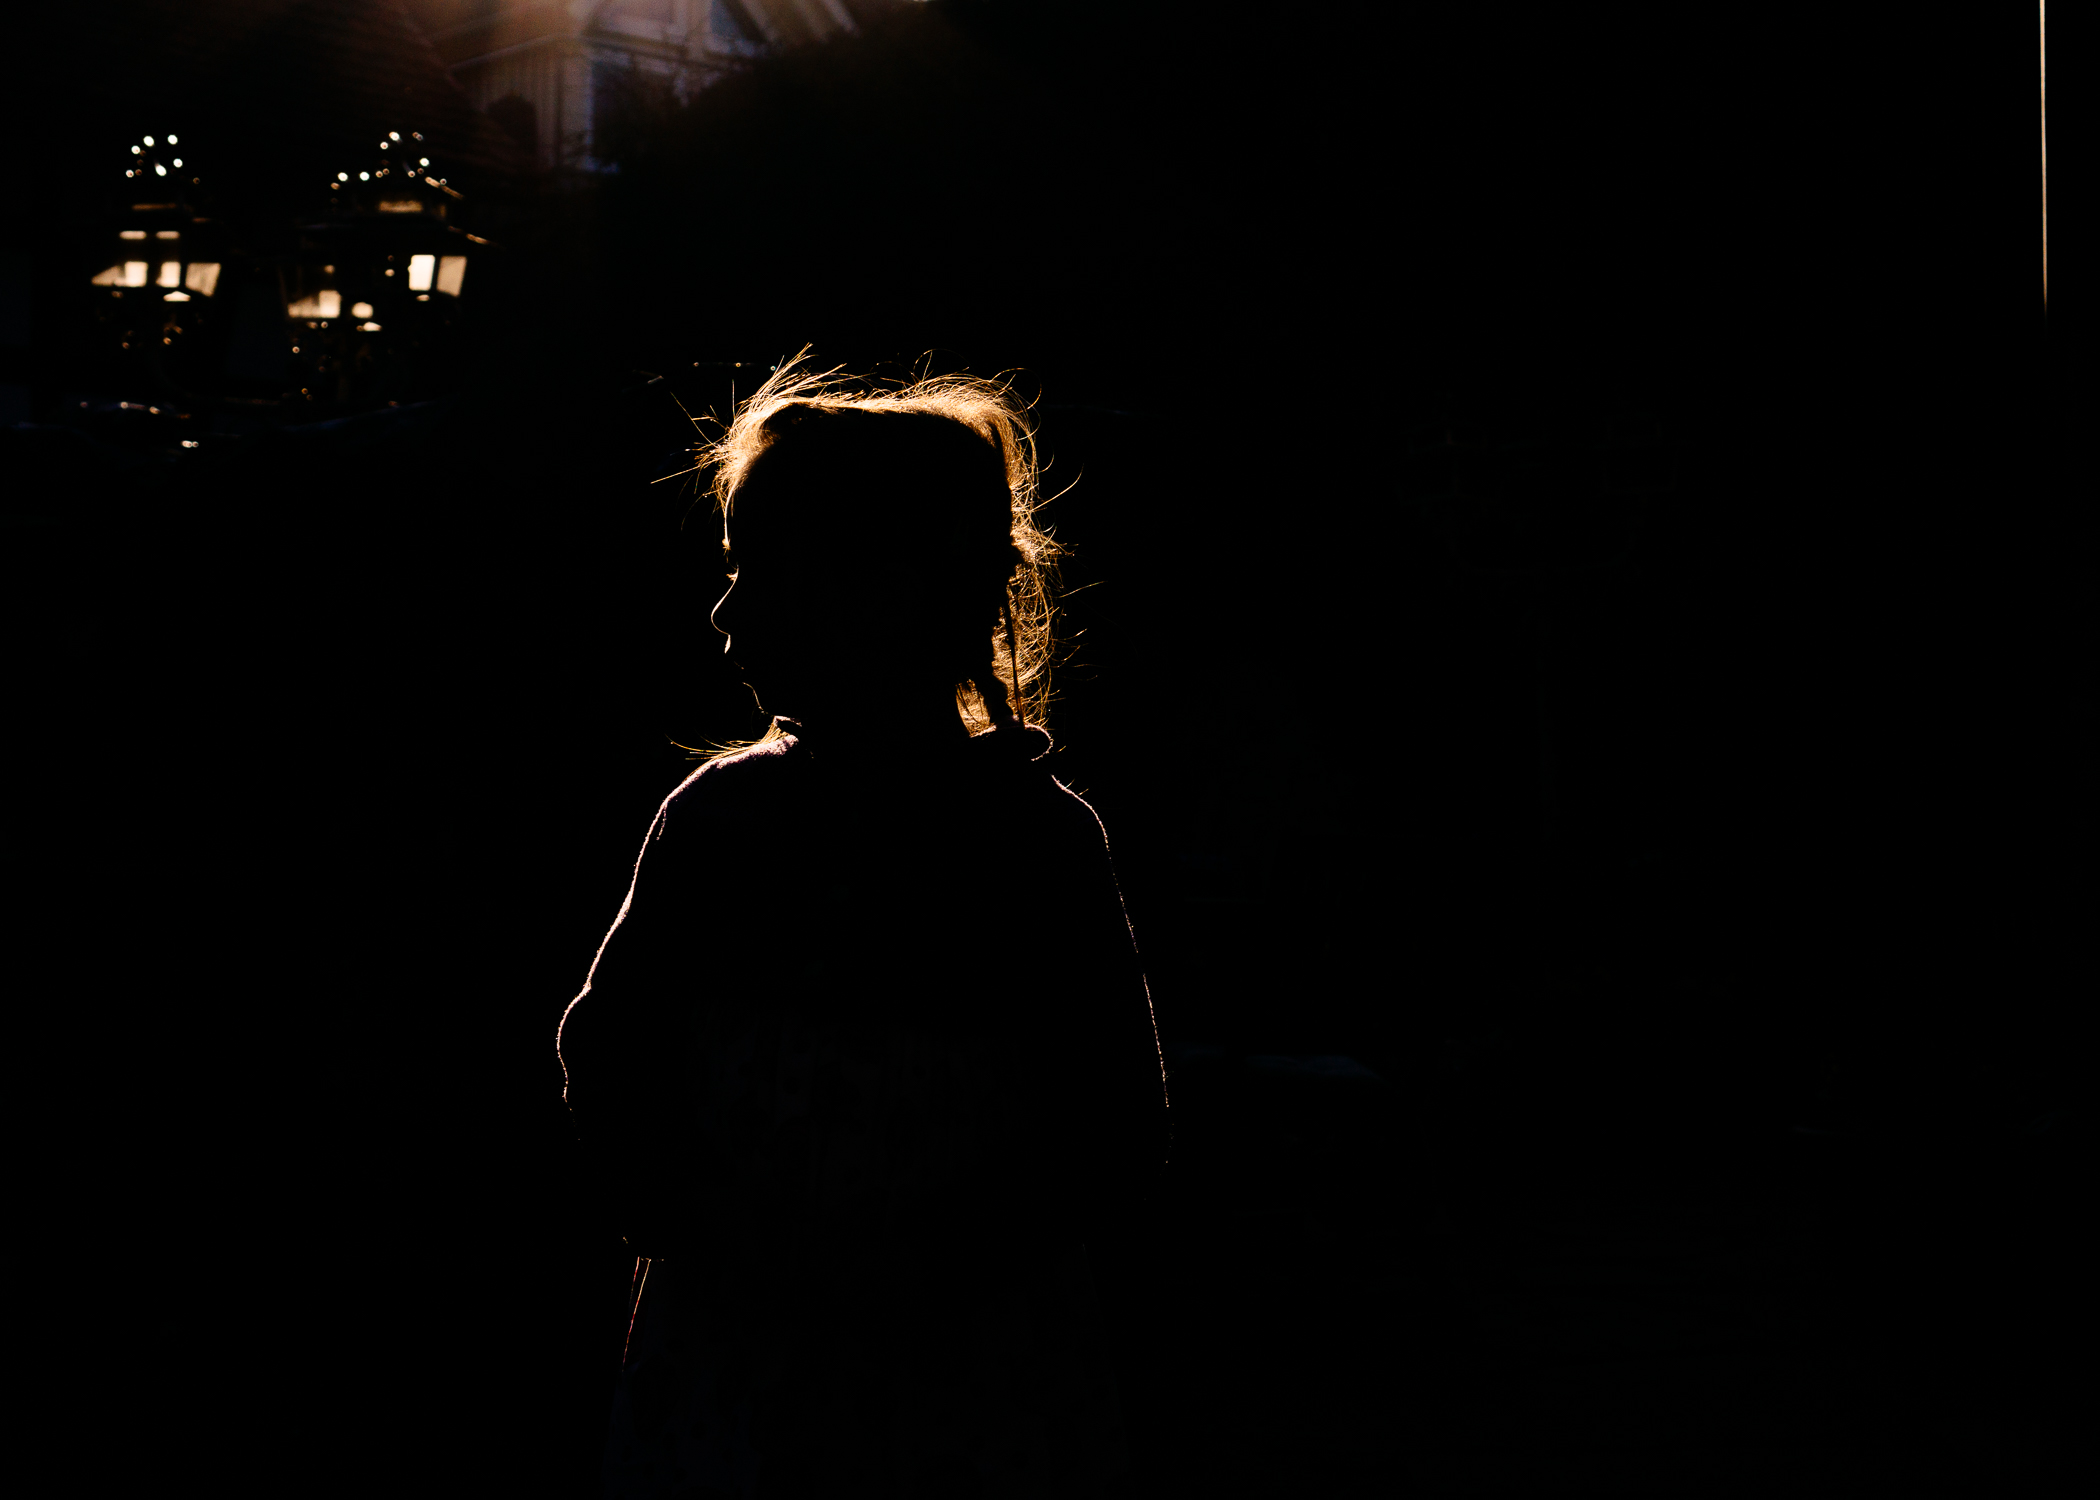 silhouette of liveness